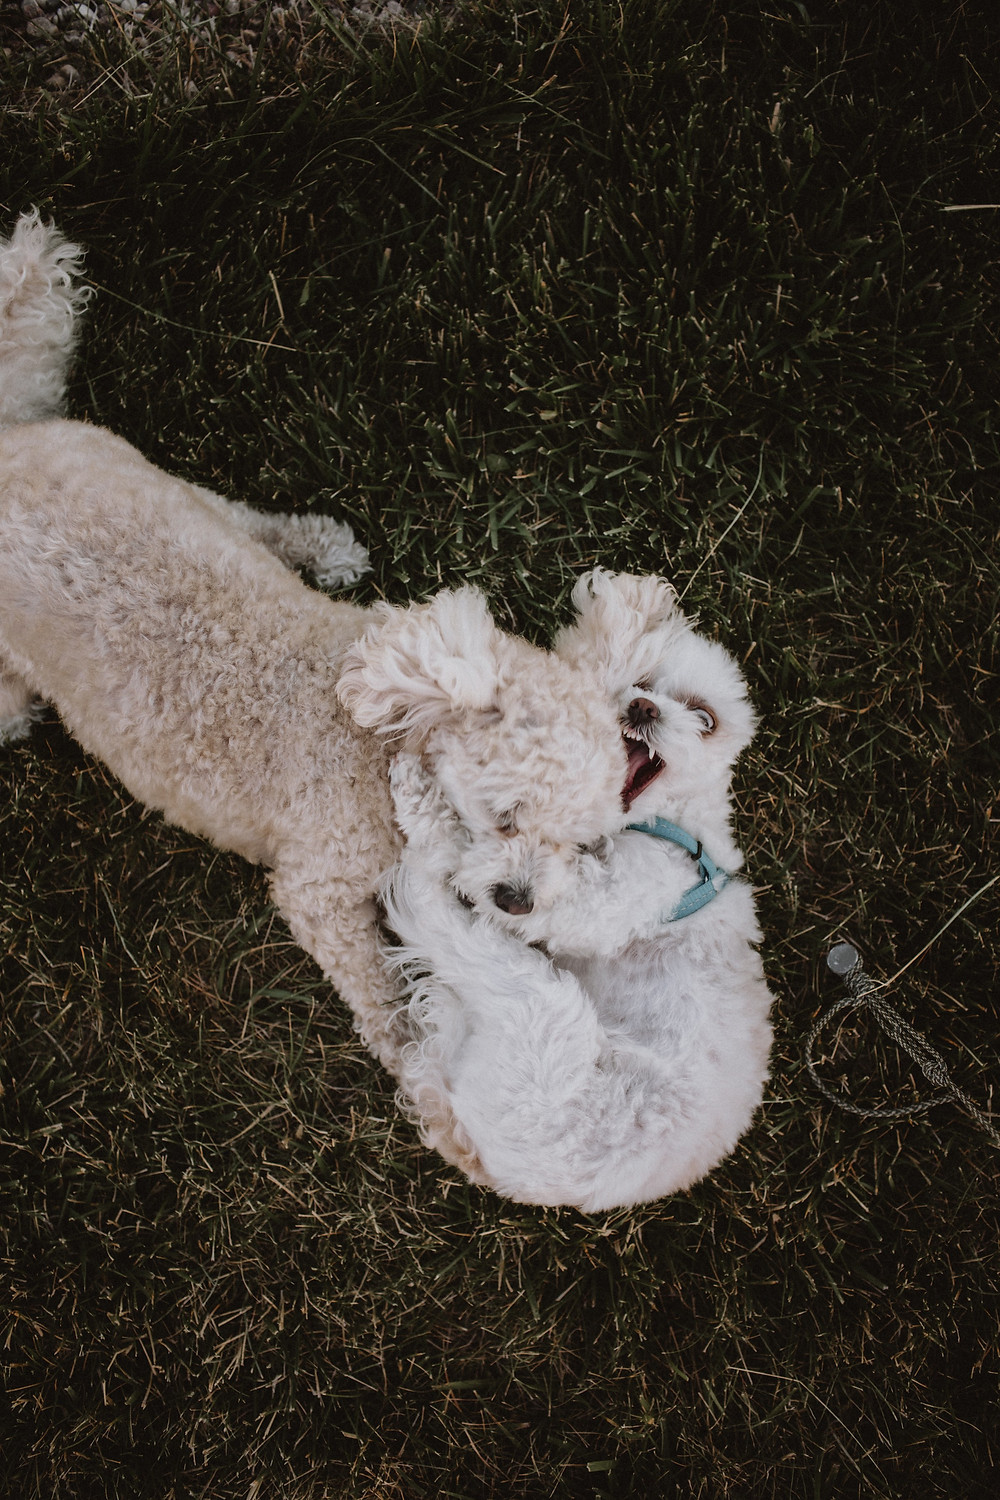 Puppies wrestle at backyard wedding reception.